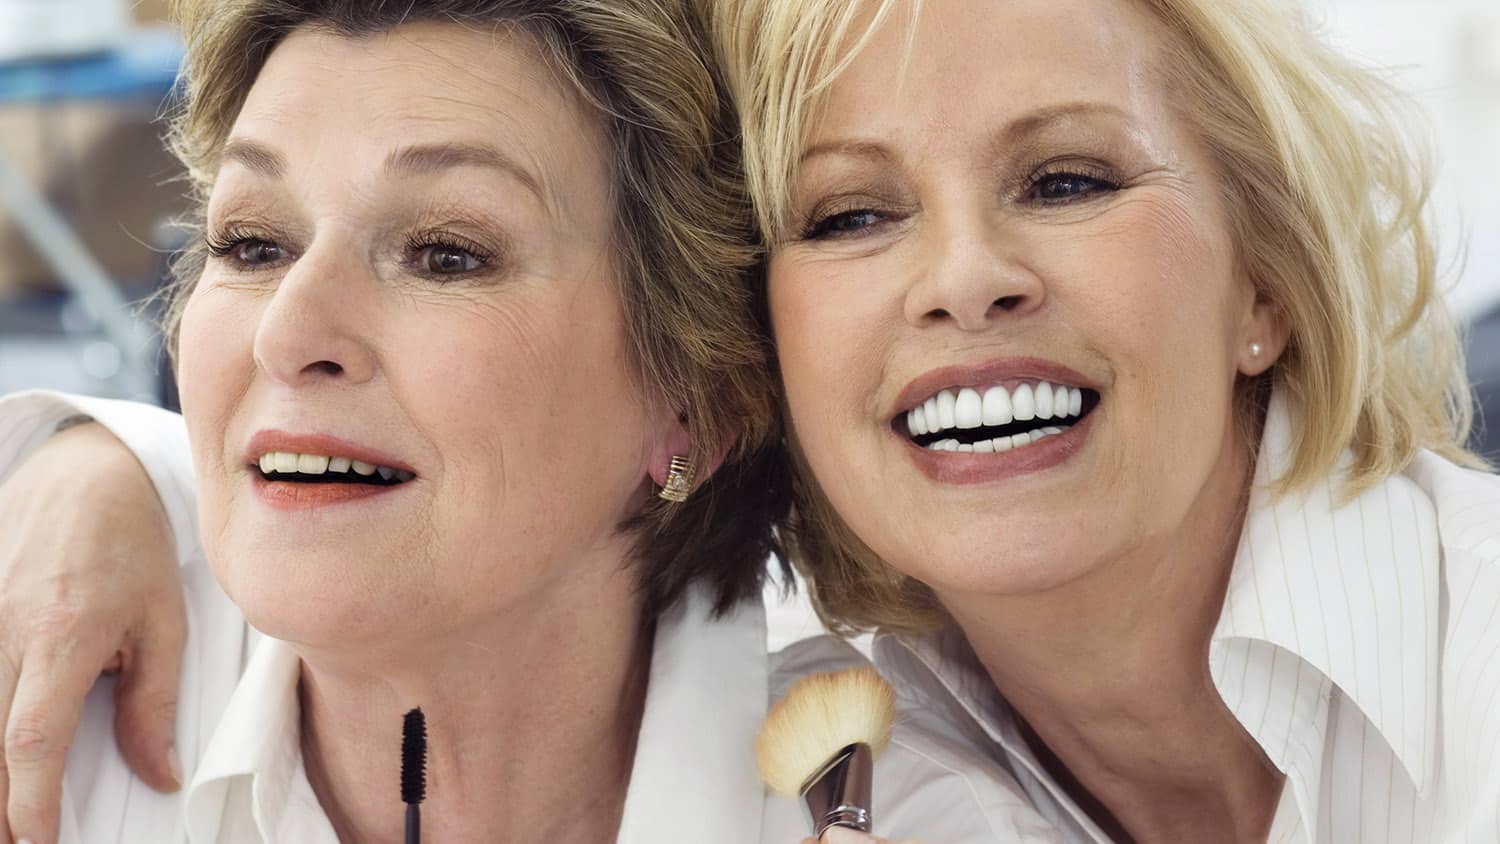 8 Exclusive Makeup Tips for Older Women from a Professional